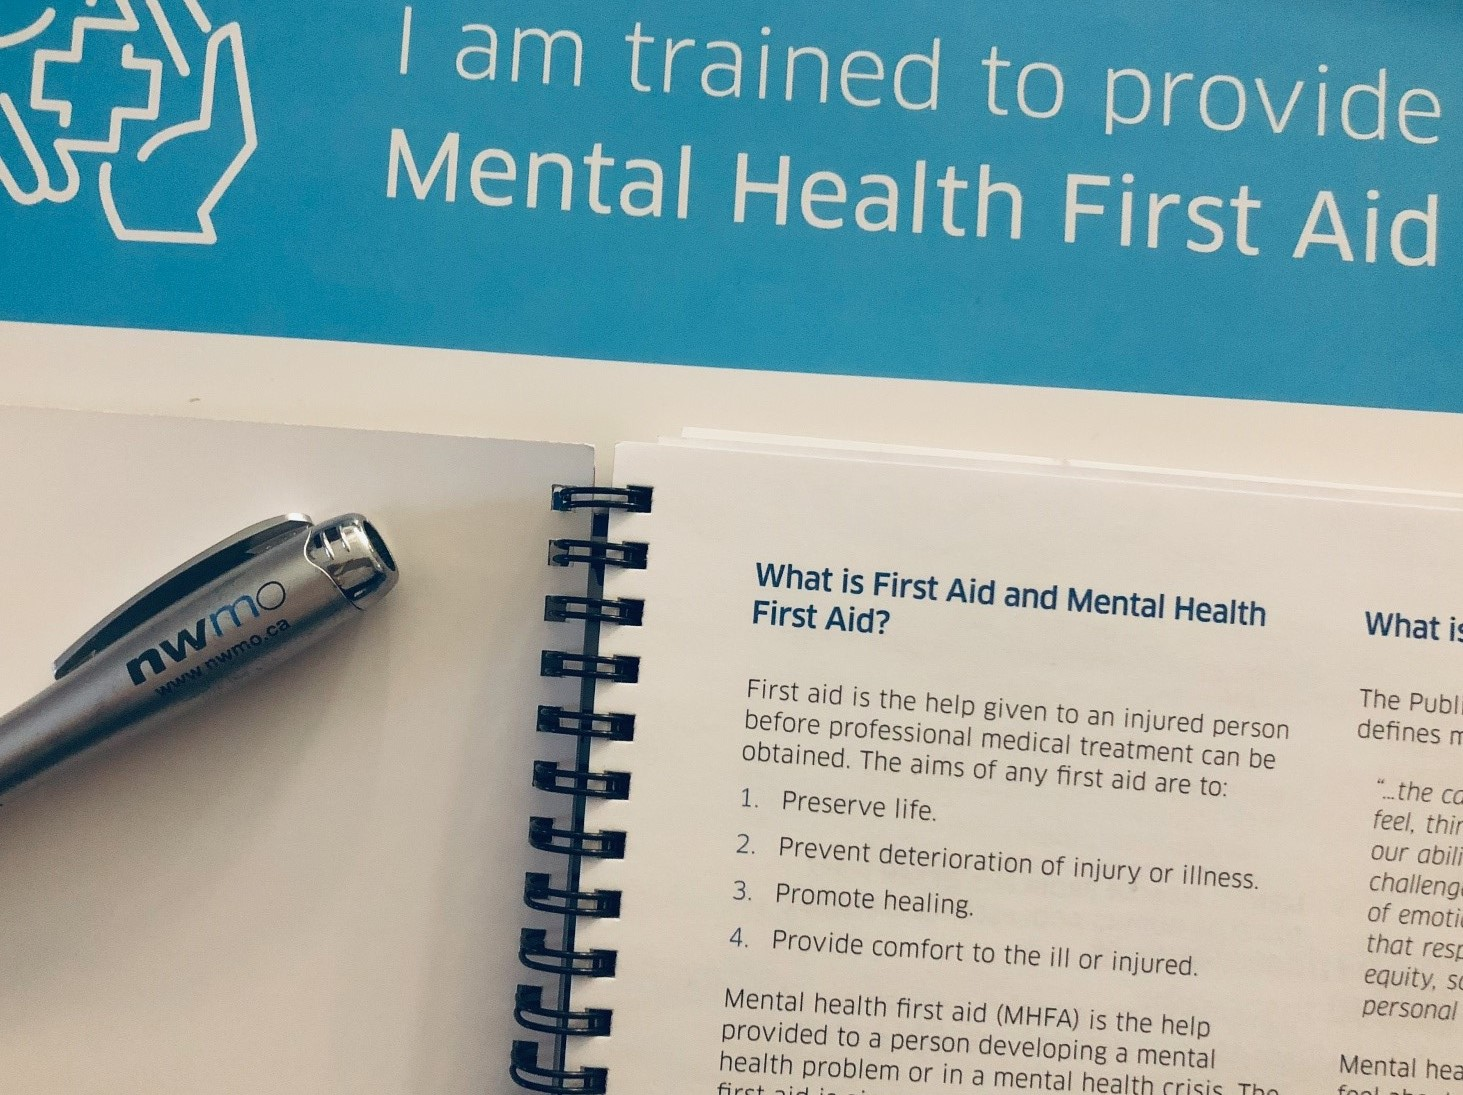 Residents of South Bruce recently took part in a Mental Health First Aid course offered by the Municipality of South Bruce in partnership with the NWMO.